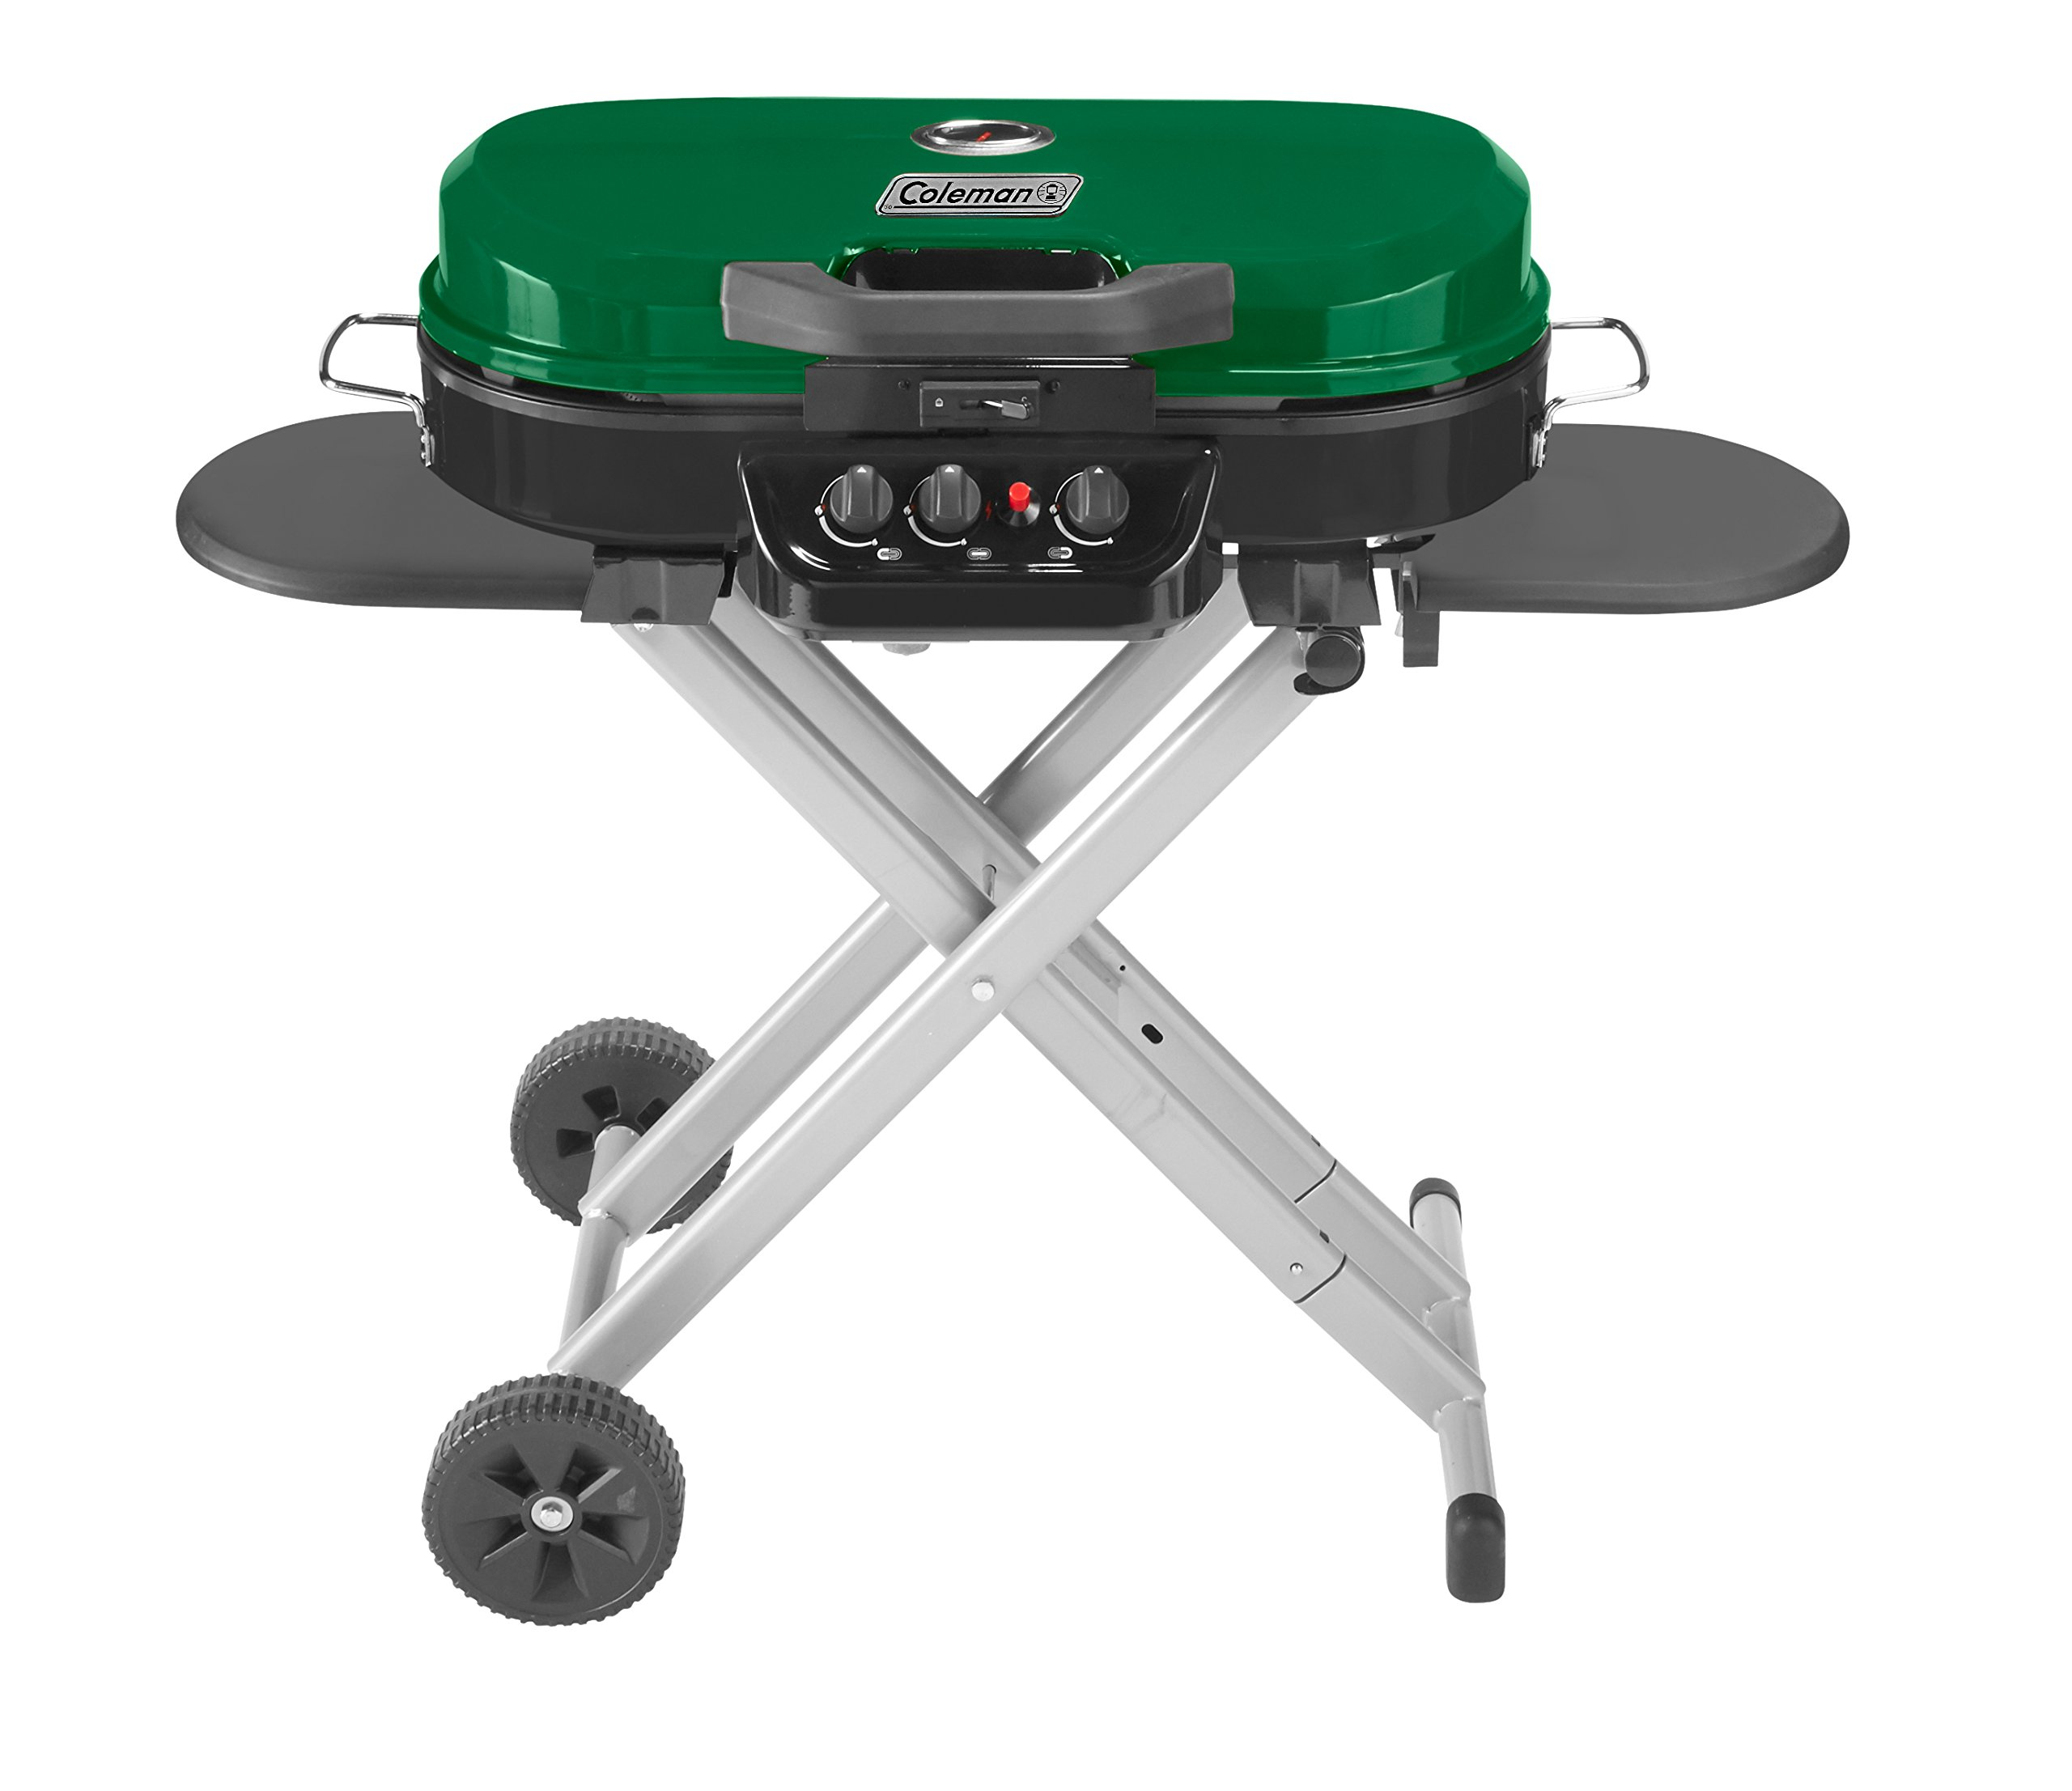 Coleman RoadTrip 285 Portable Stand-Up Propane Grill, Green by Coleman